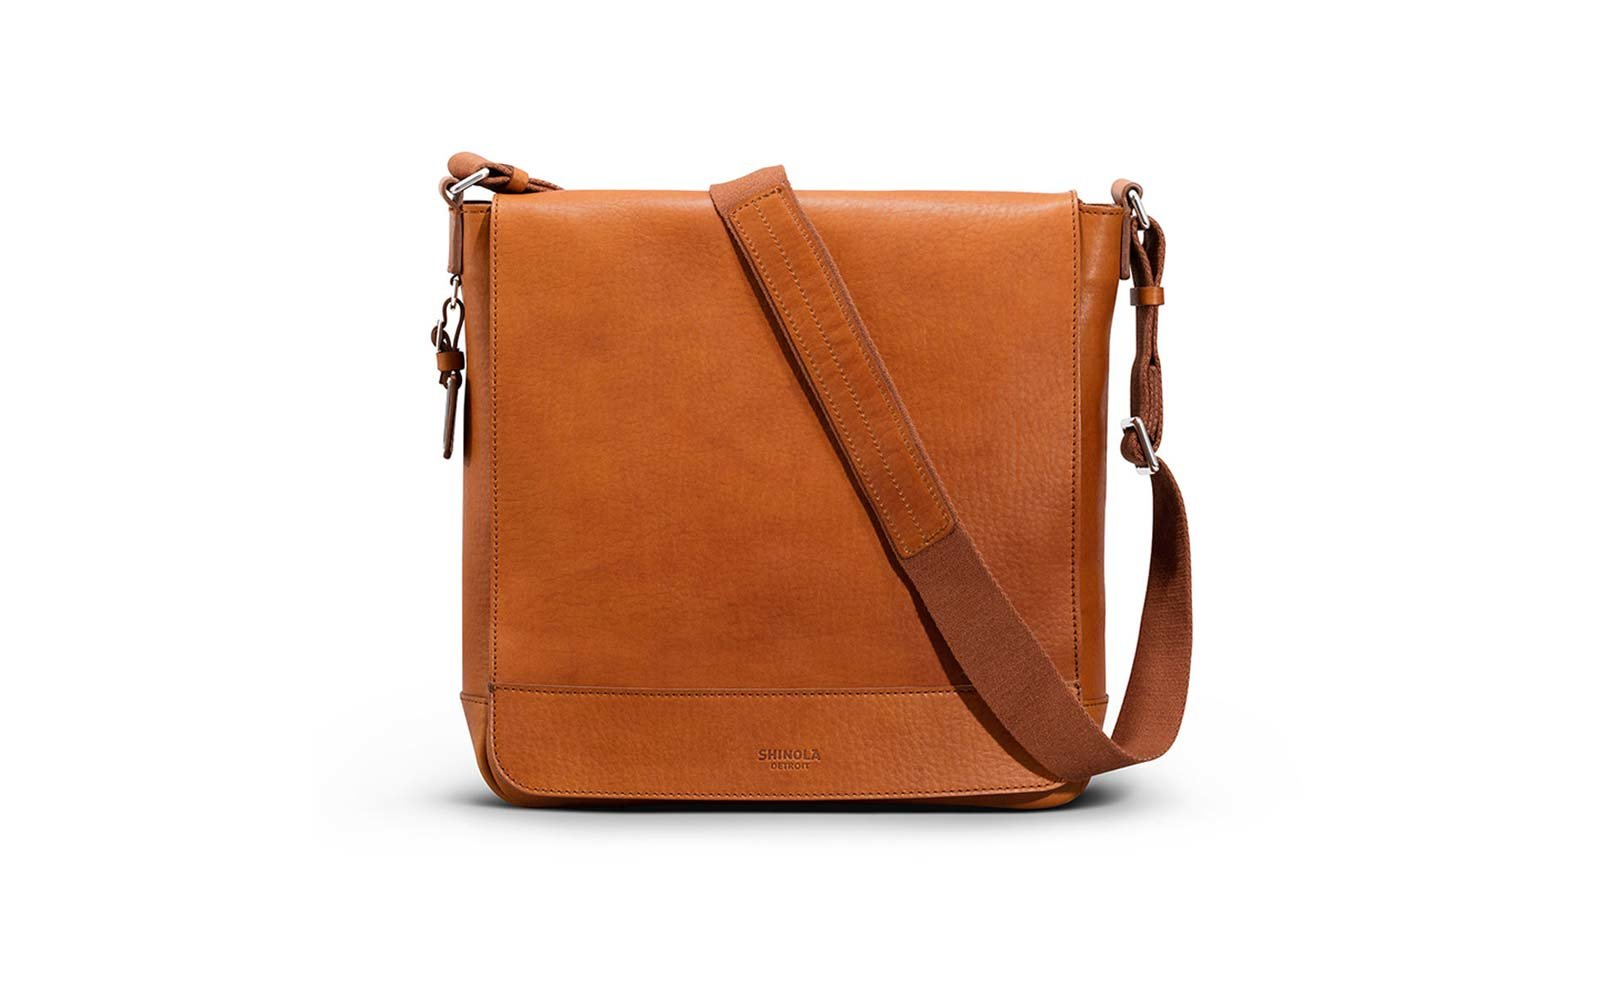 Shinola Messenger Bag